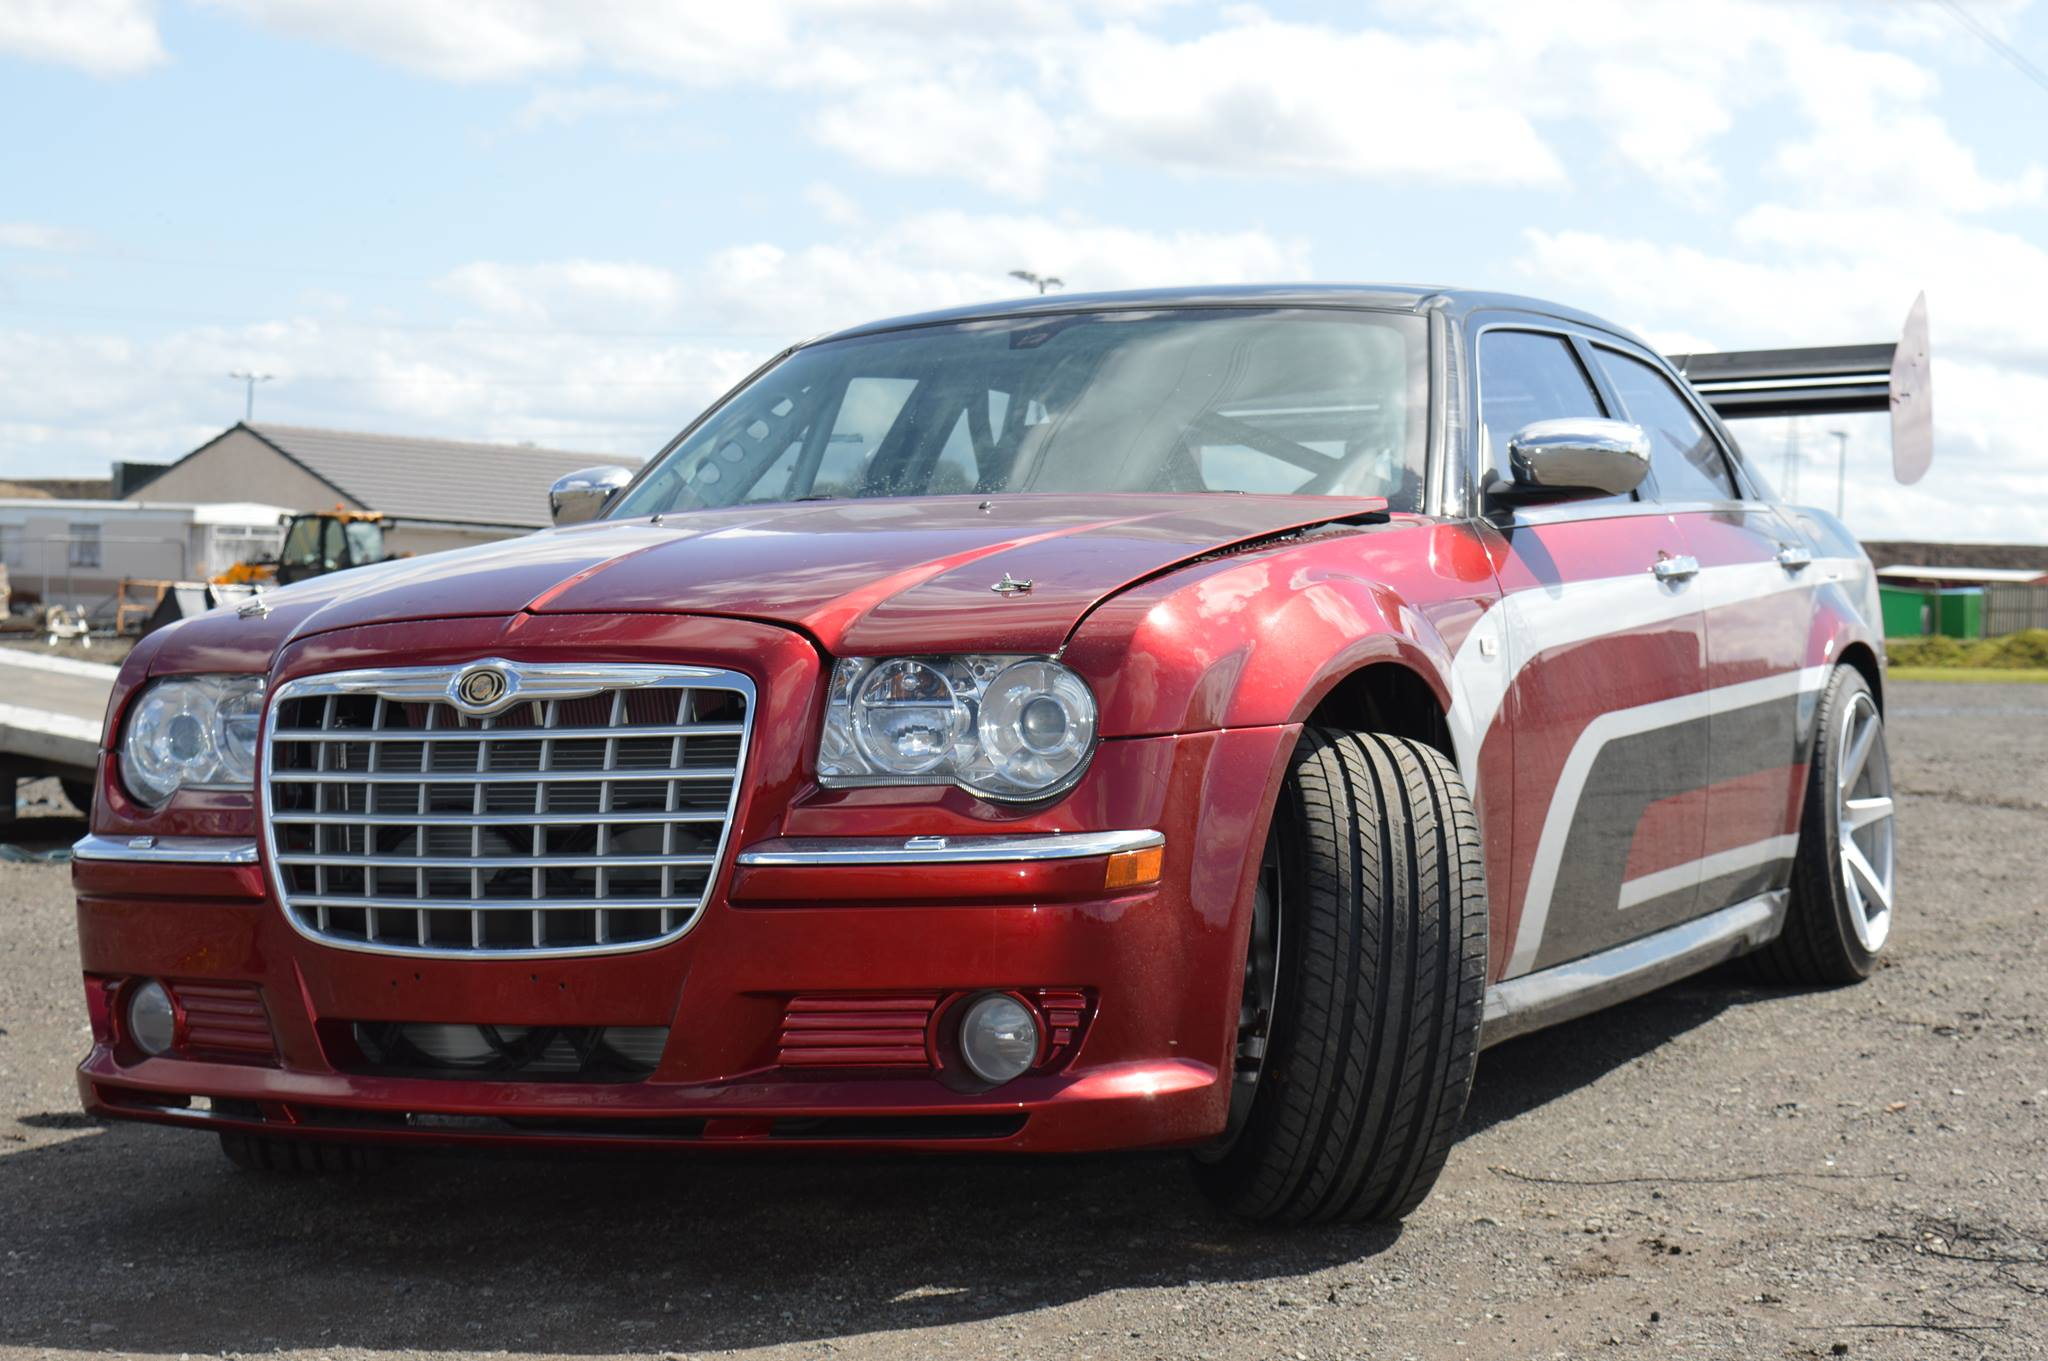 Chrysler 300C with a Viper V10 02 chrysler 300c with a viper v10 engine swap depot  at mifinder.co